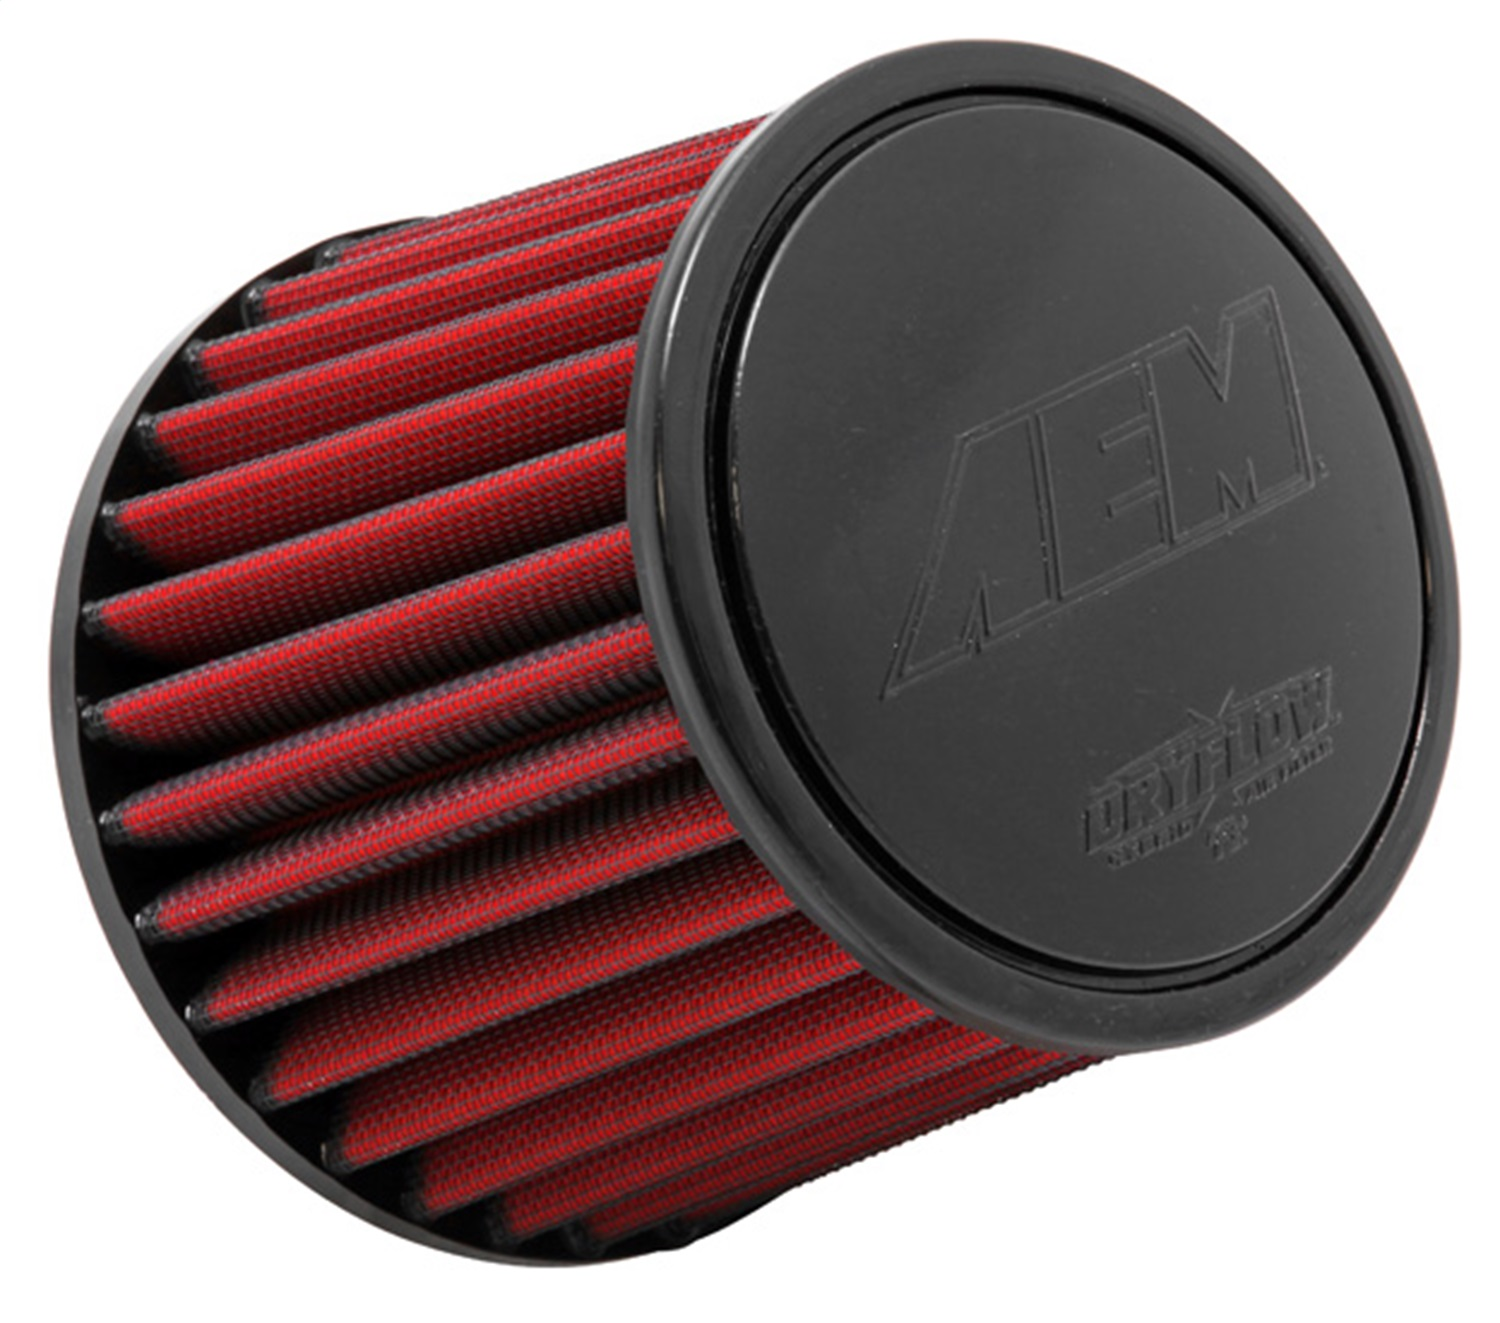 "Aem Dryflow Red Round Tapered Air Filter 2.75"" Flange/6"" Base/5.125"" Top/5.25""High 21-202DK"